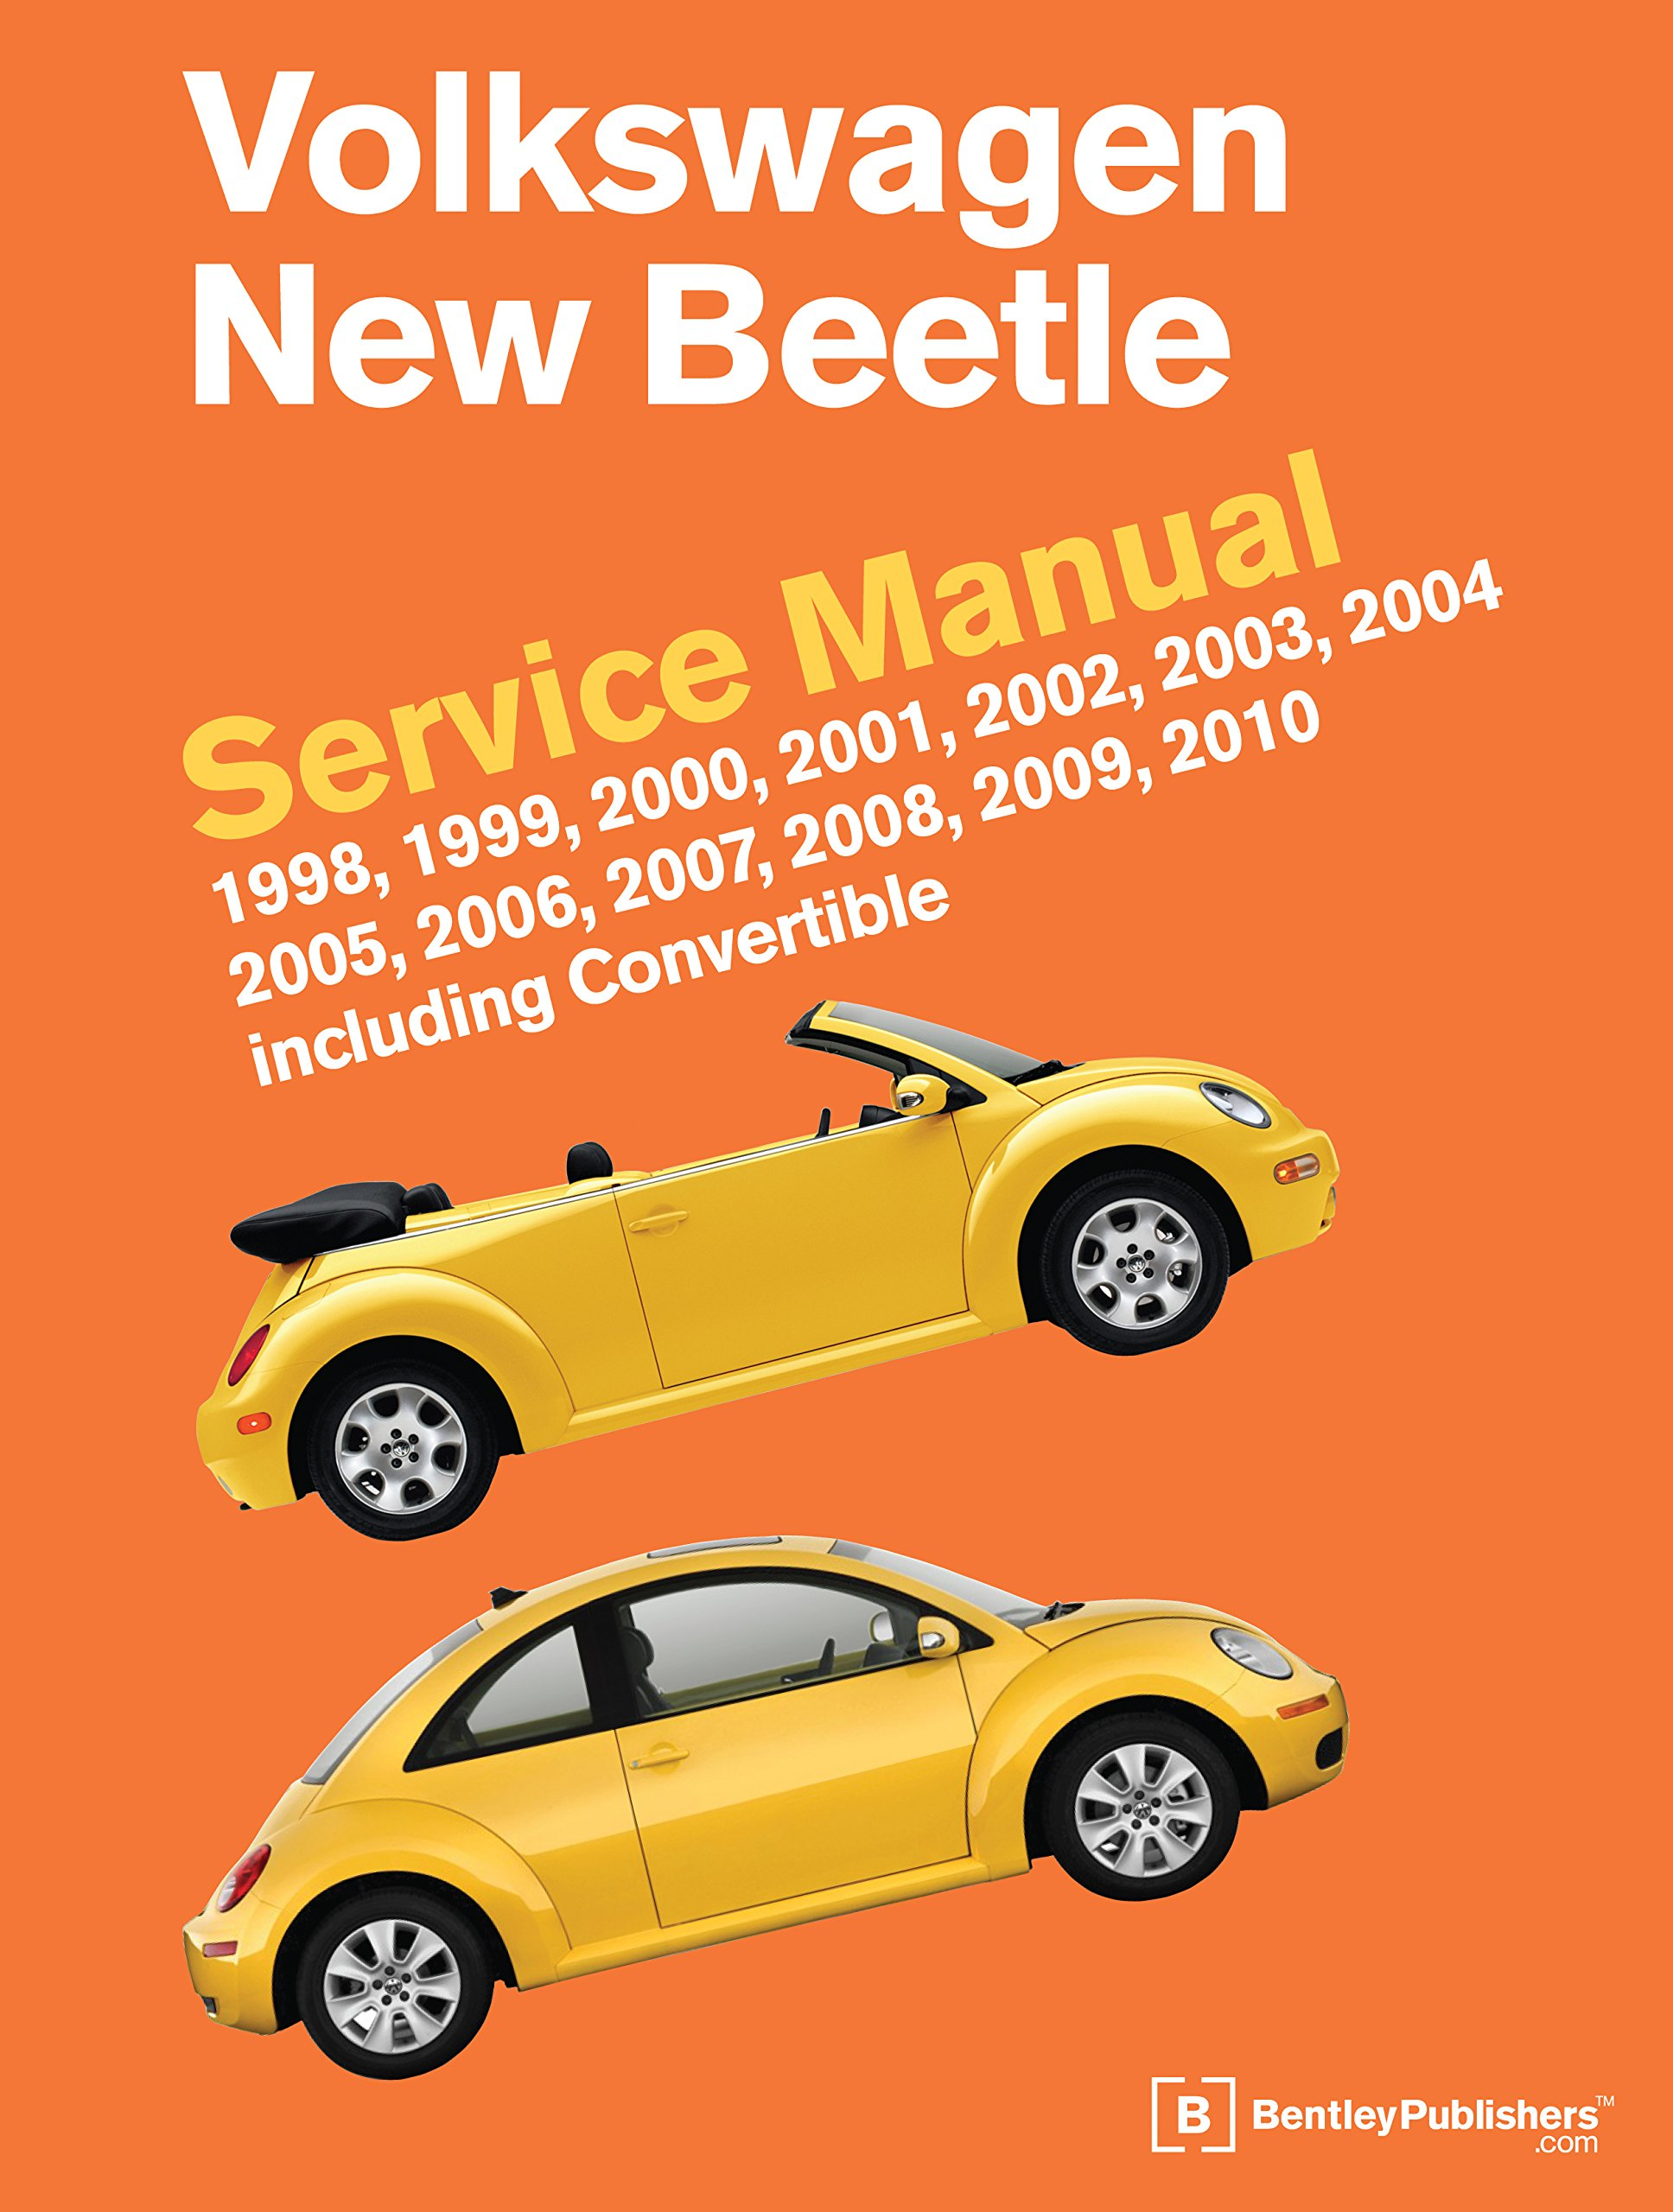 Volkswagen new beetle service manual 1998 1999 2000 2001 2002 volkswagen new beetle service manual 1998 1999 2000 2001 2002 2003 2004 2005 2006 2007 2008 2009 2010 including convertible amazon fandeluxe